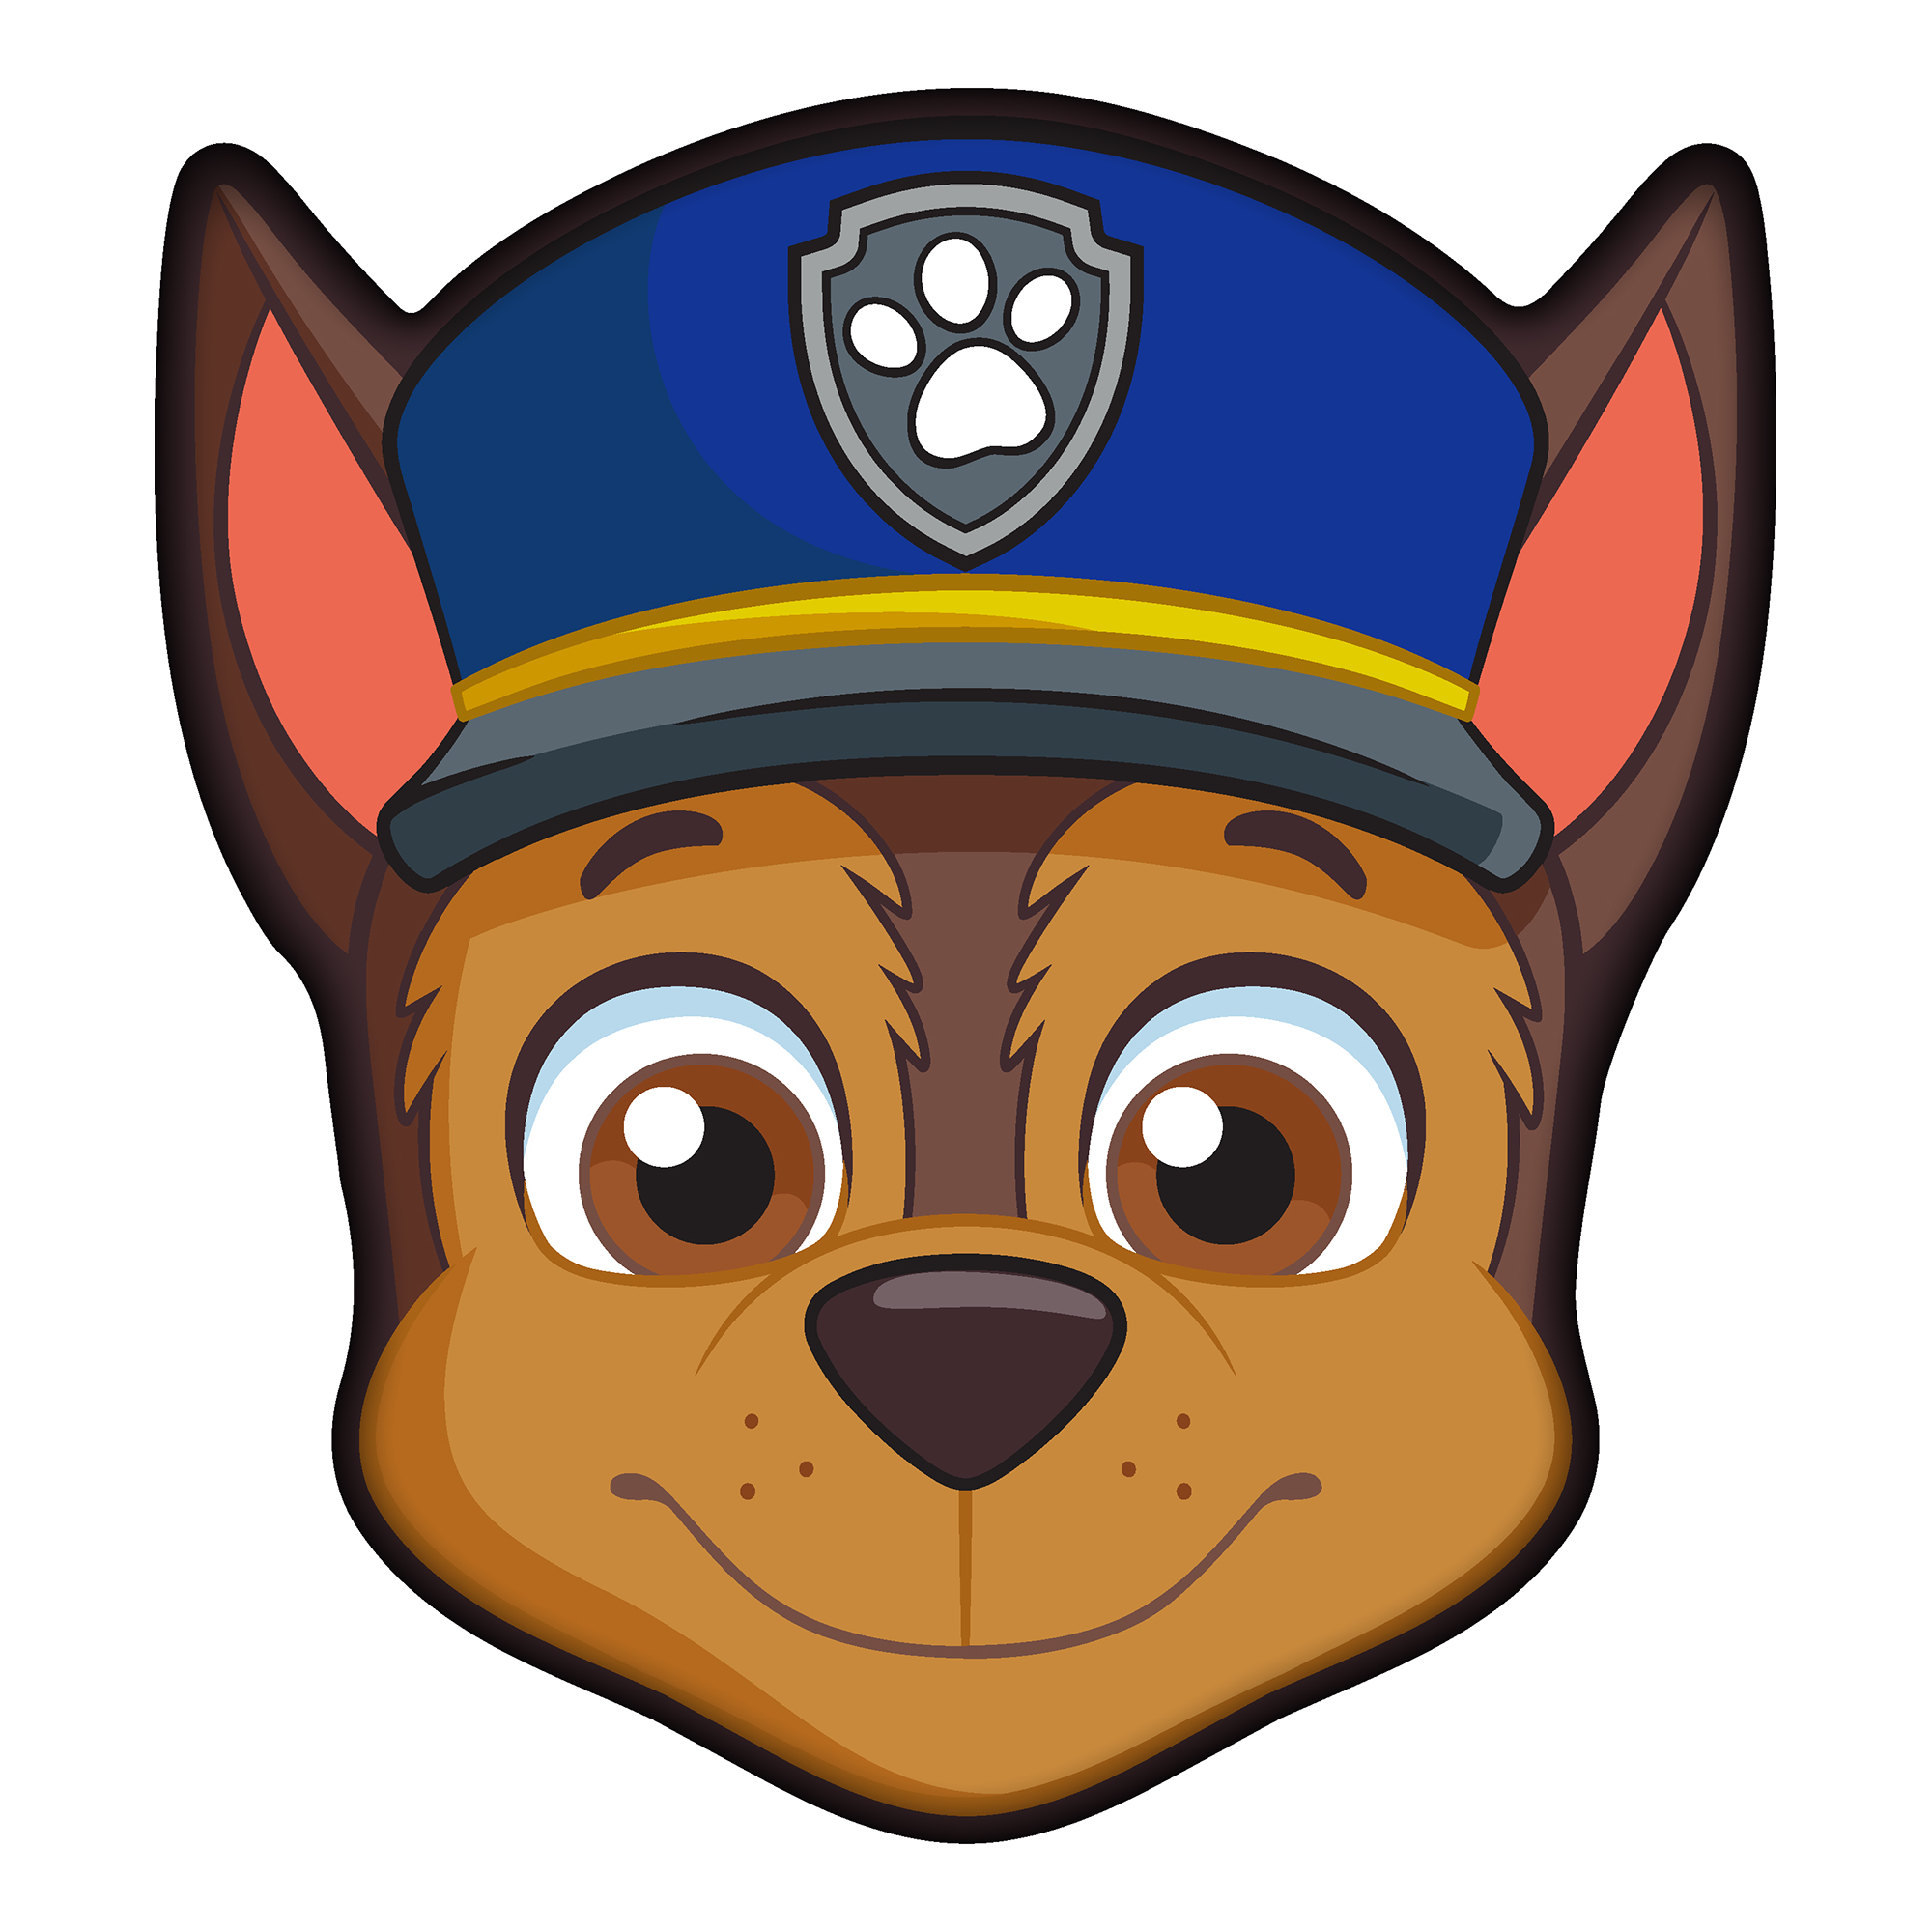 Paw patrol clipart images in collection page 3 jpg.